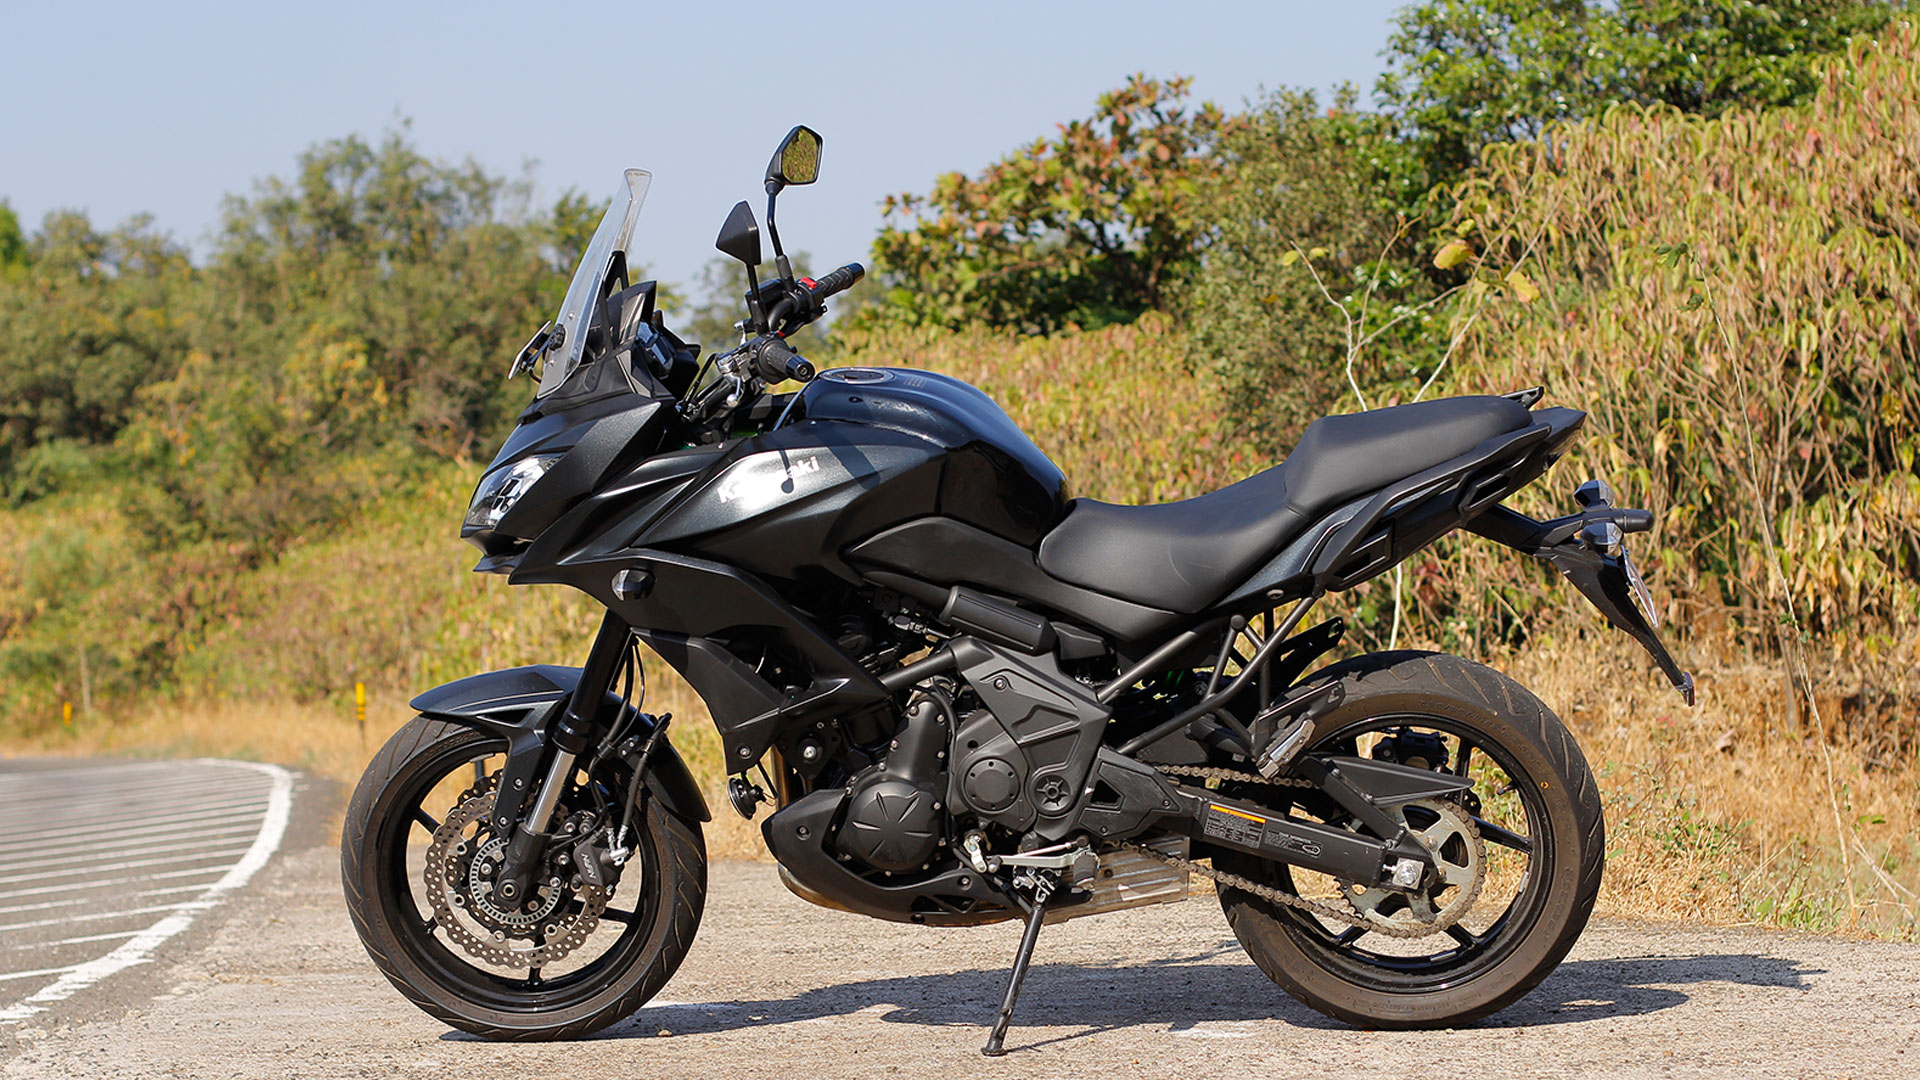 kawasaki versys 650 2016 price mileage reviews specification gallery overdrive. Black Bedroom Furniture Sets. Home Design Ideas